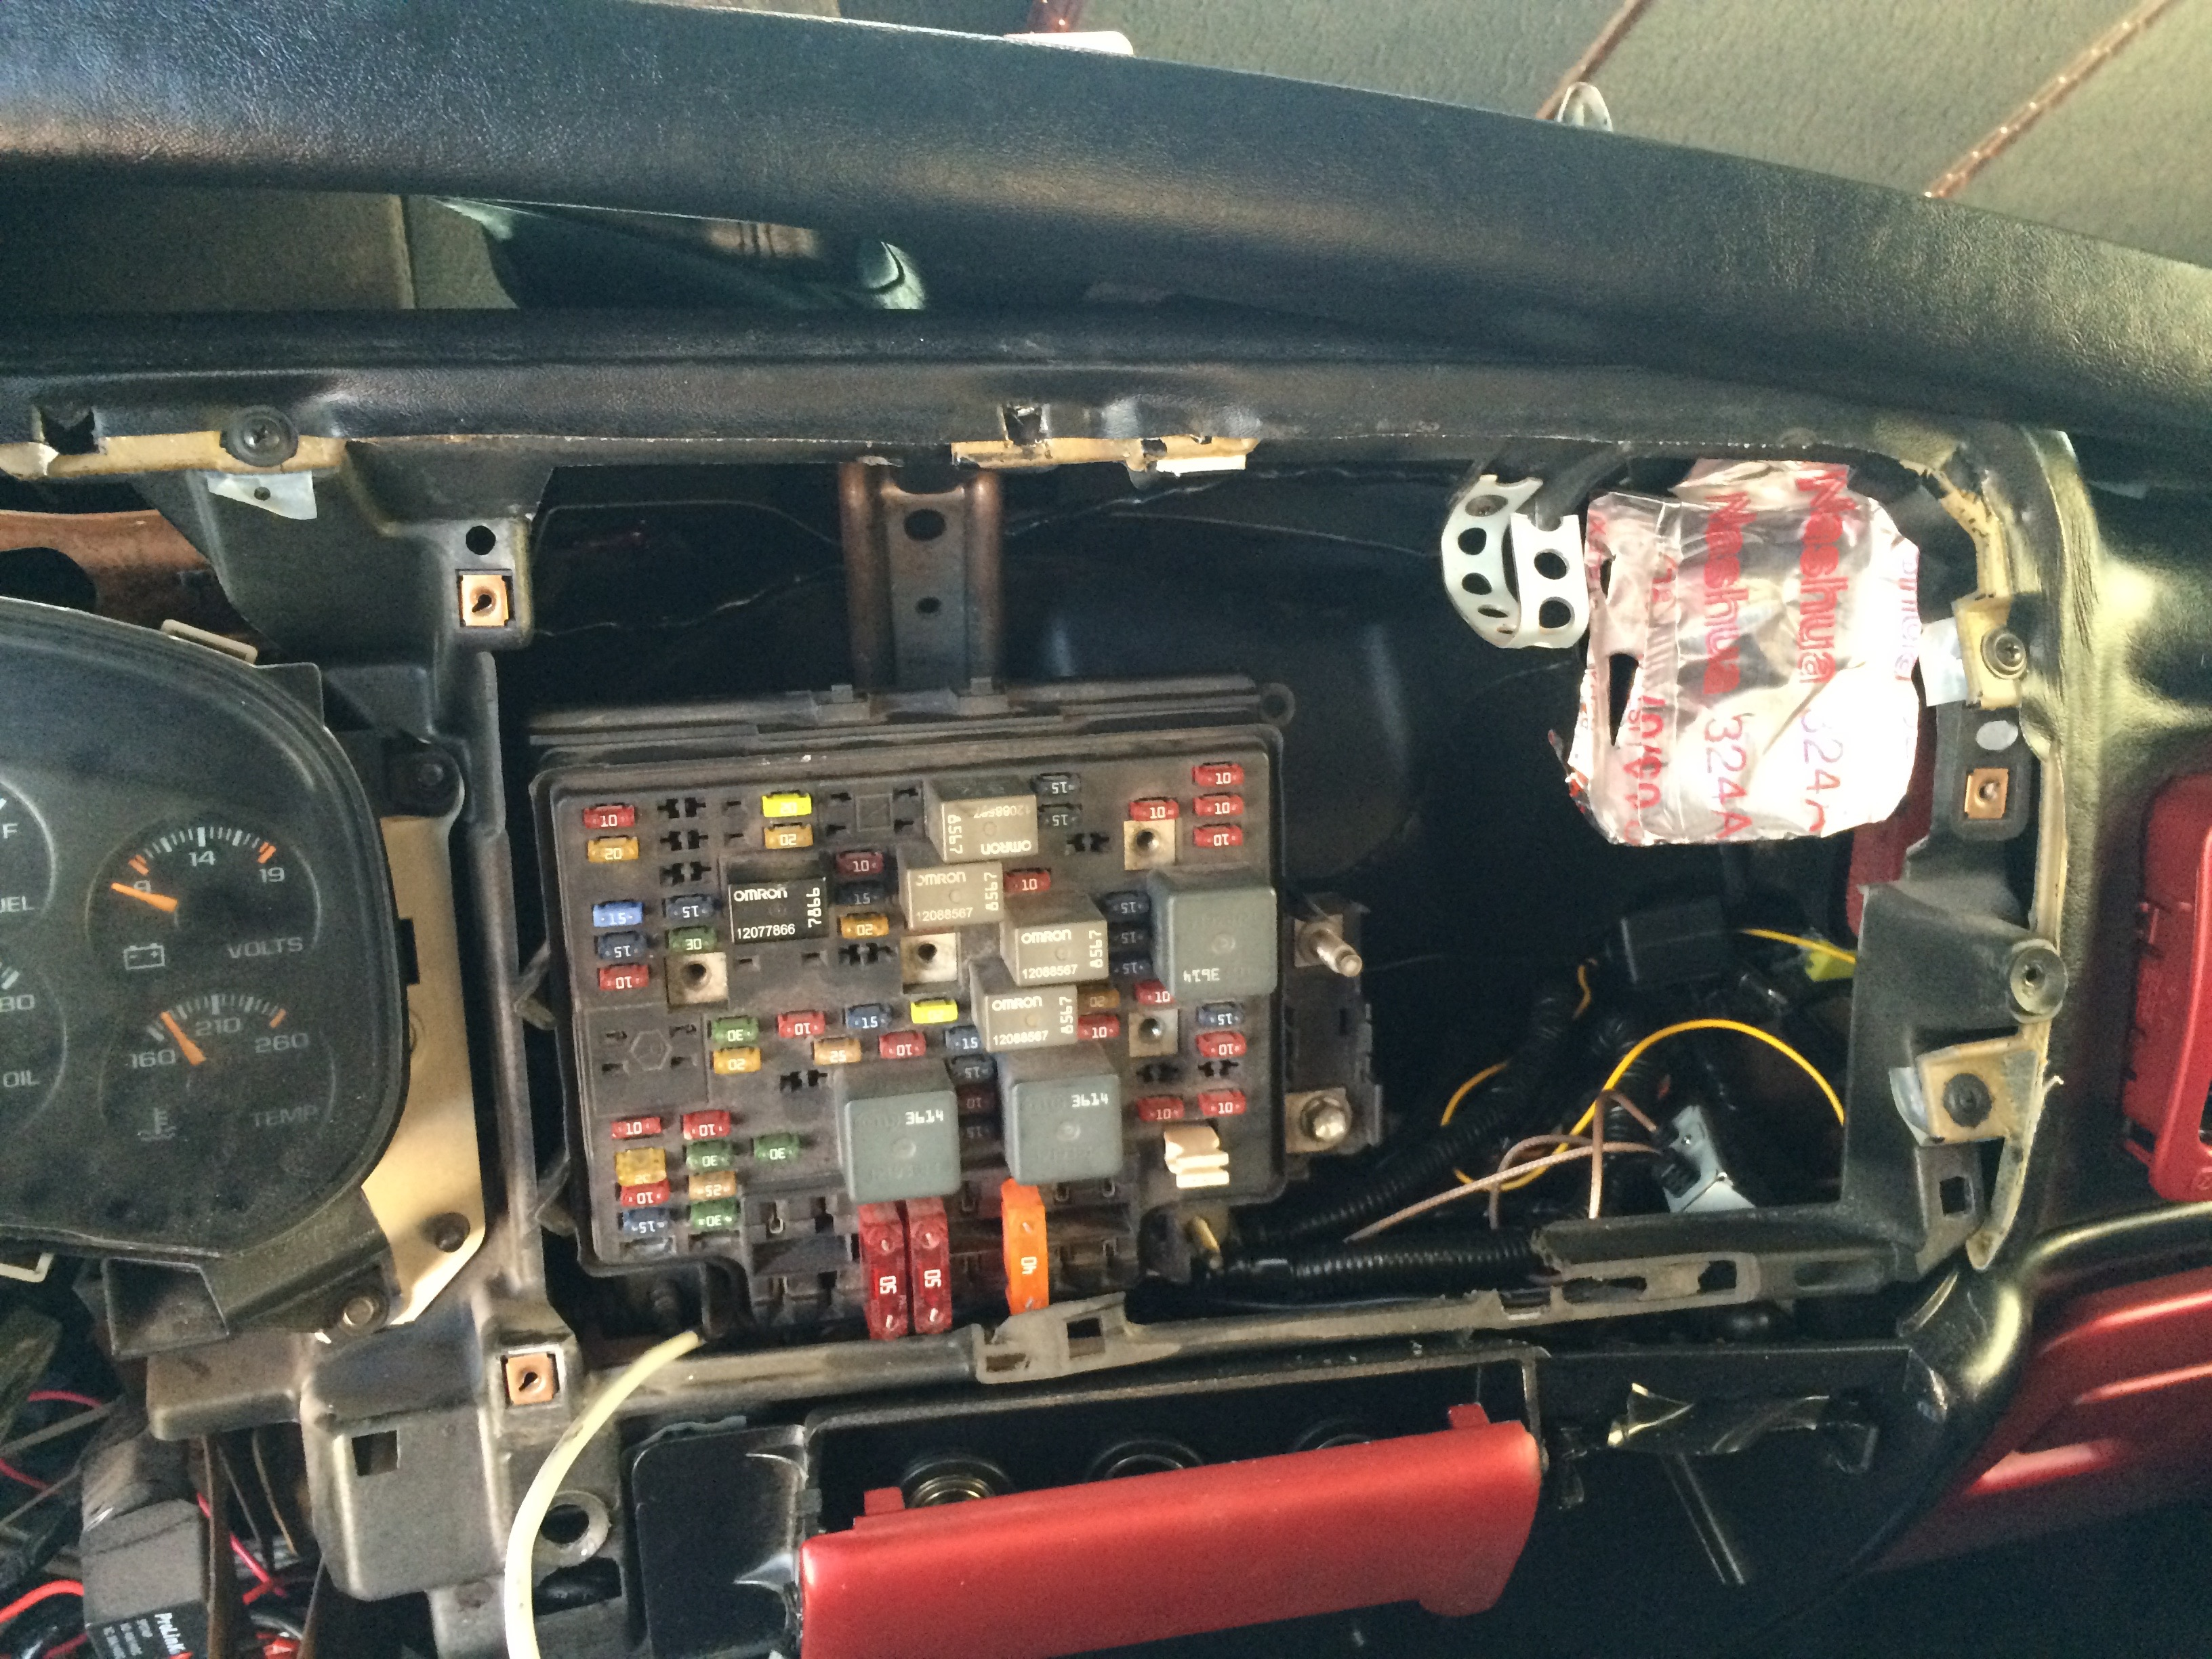 S13 Fuse Box Tuck - wiring diagram kid-gtr - kid-gtr.energiavicina.it | Tucked 240sx Fuse Box |  | energiavicina.it